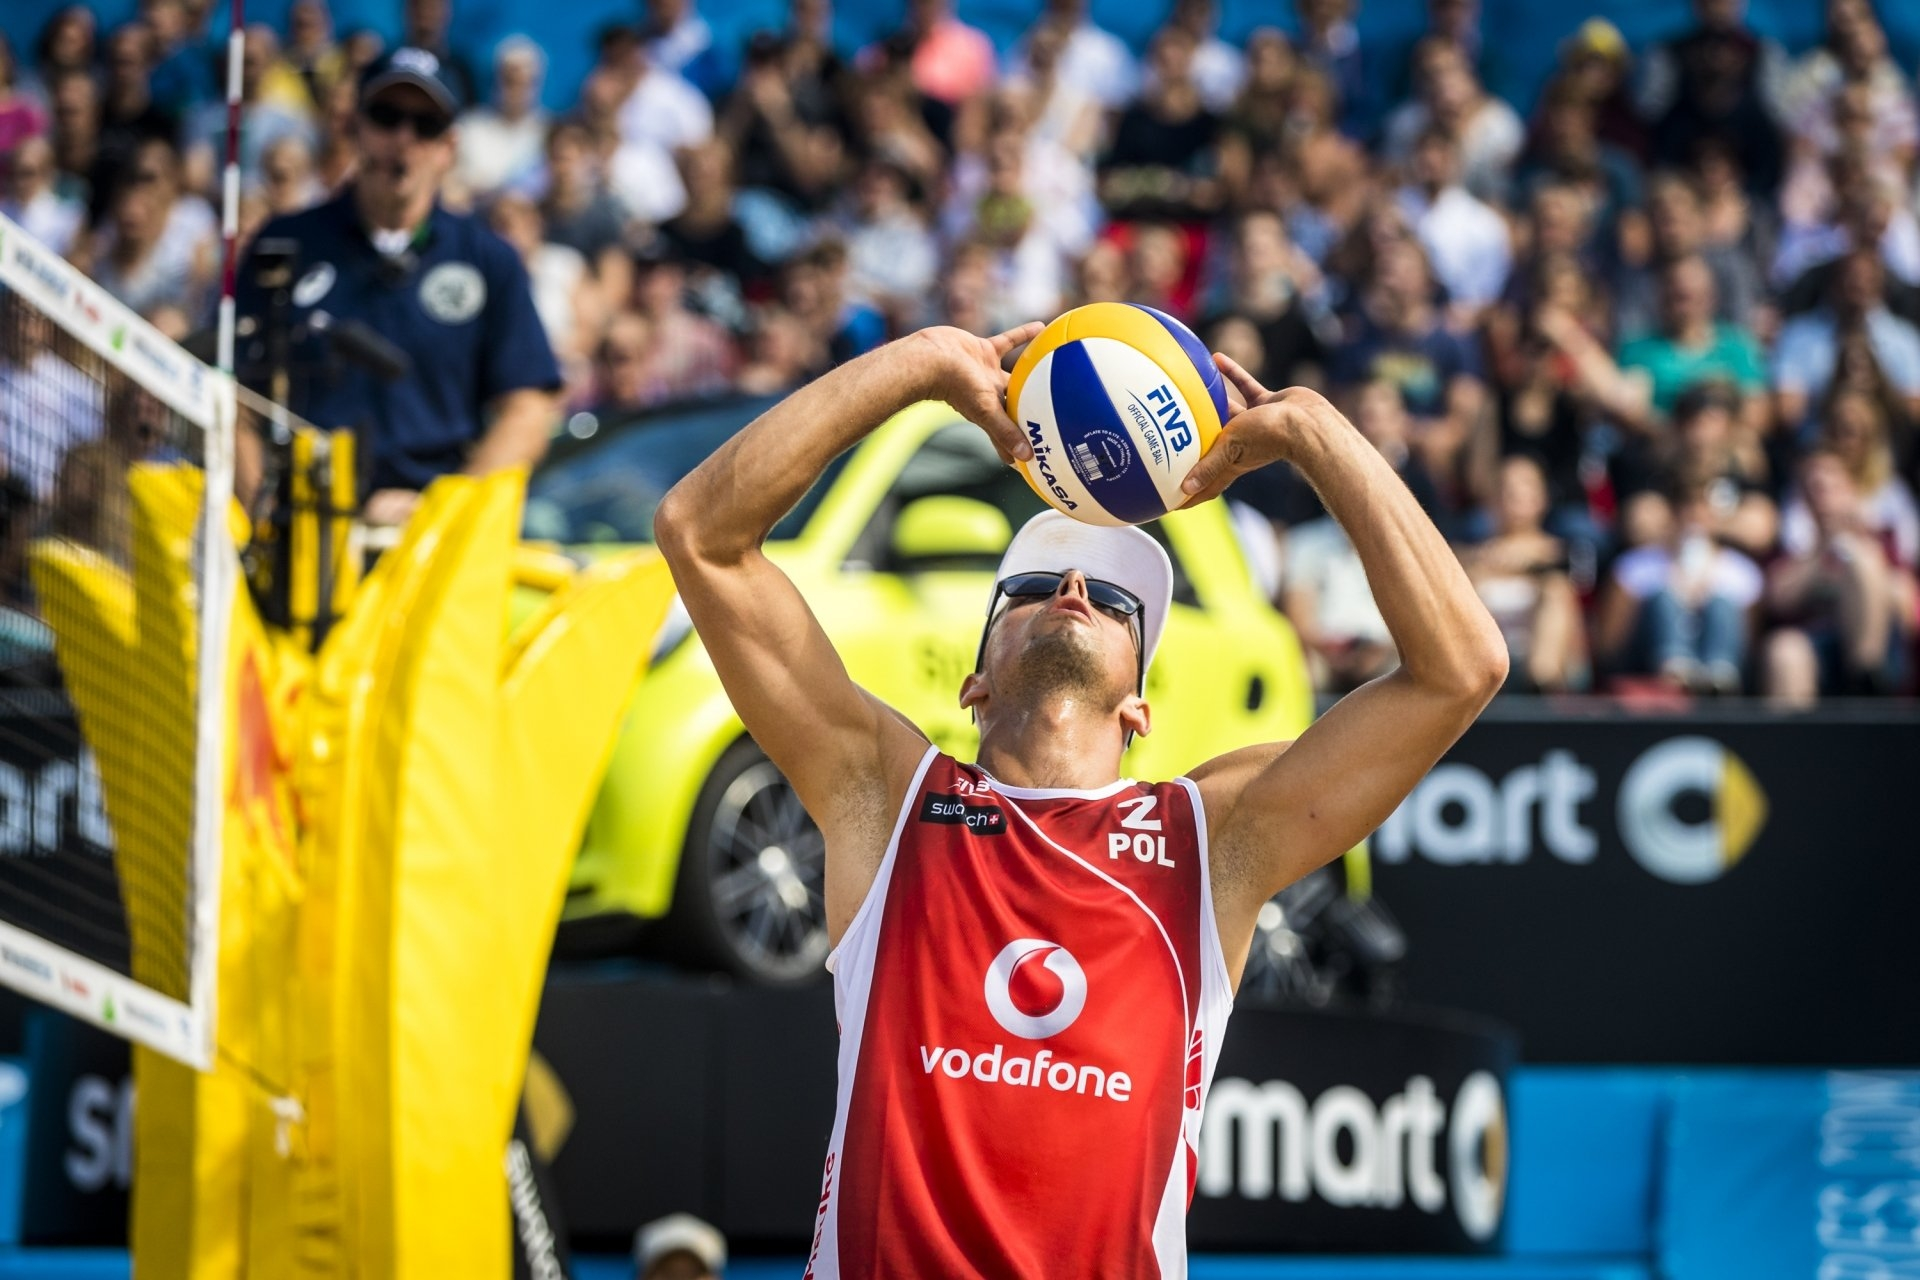 Losiak is one of the most talented setters competing in the Beach Major Series